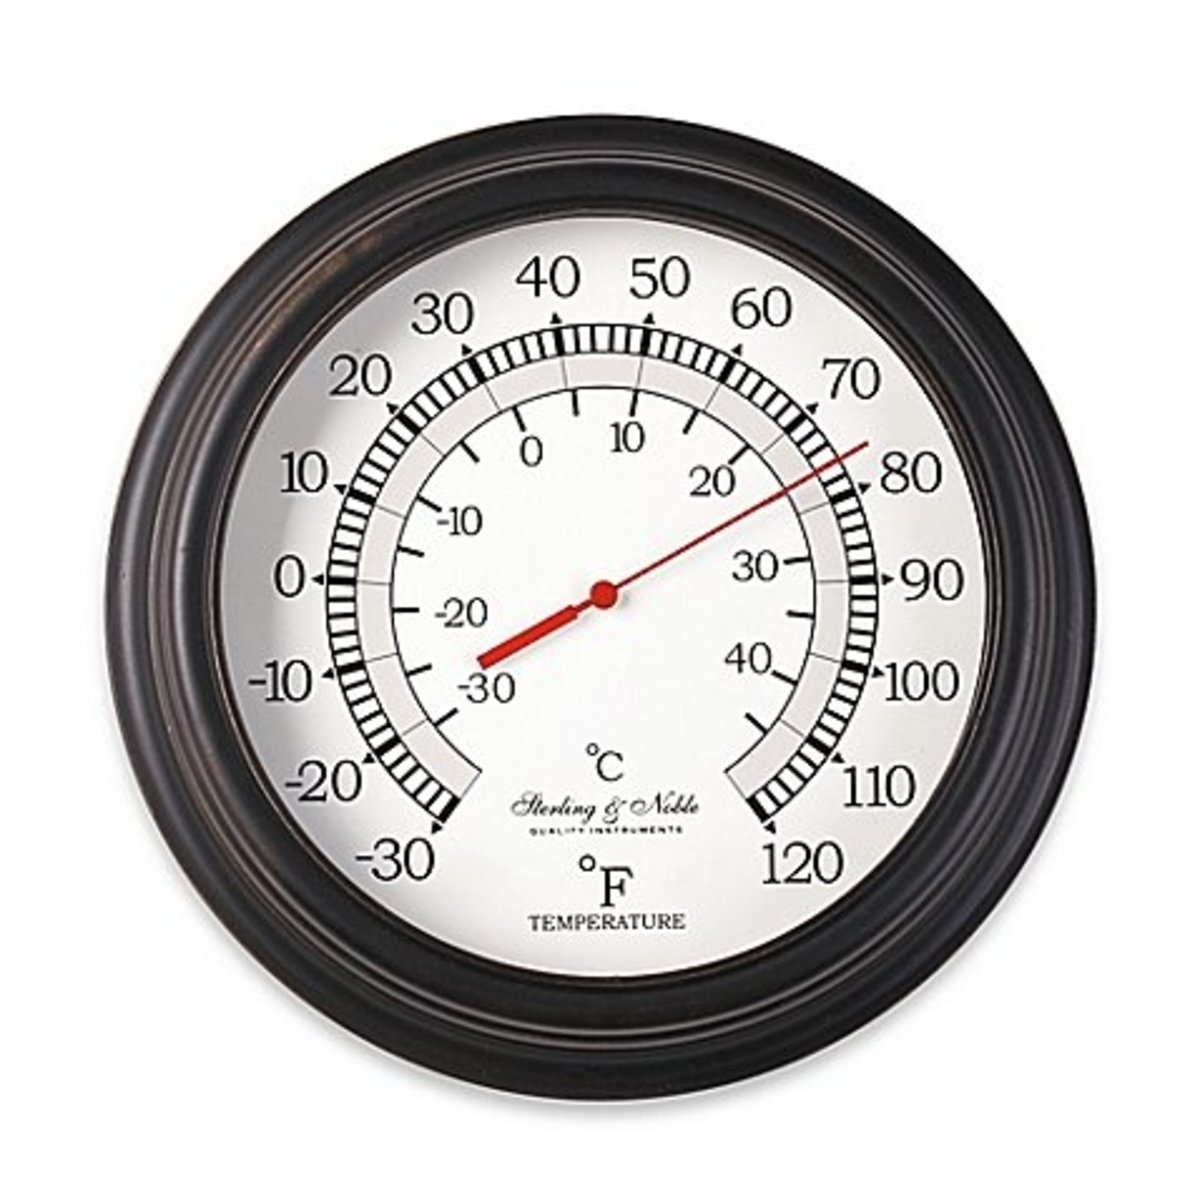 It's important to watch the thermometer. Outside temperature gauges and thermometers are easily obtainable.